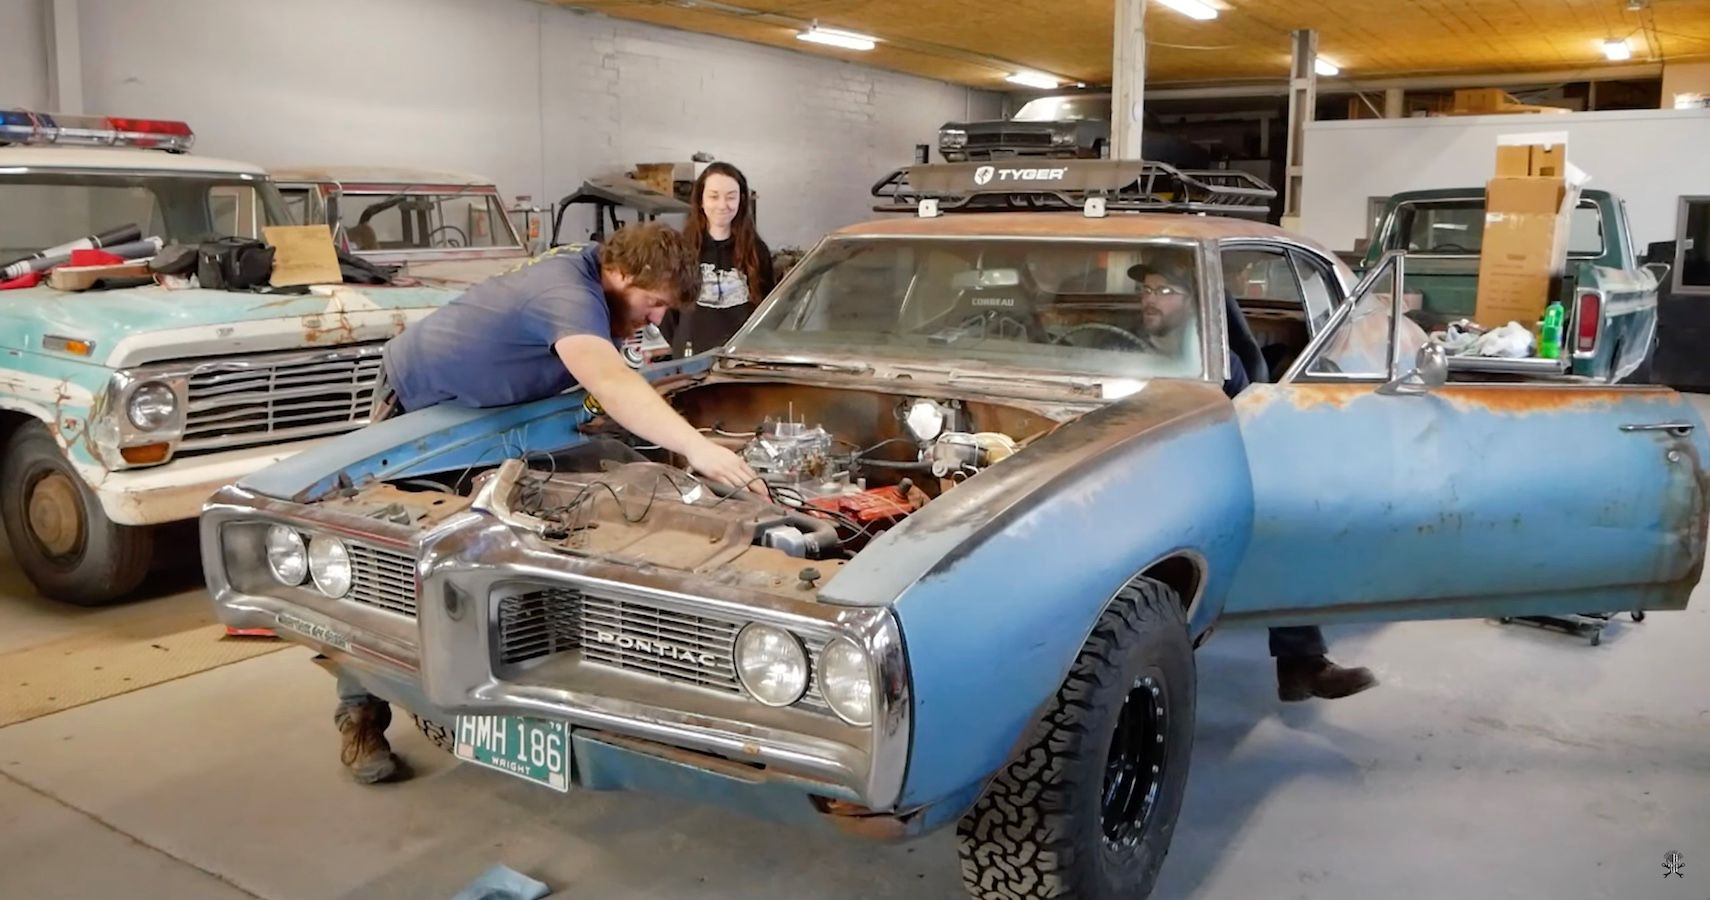 Witness This Abandoned 1968 Pontiac LeMans Brought Back To Life After 35 Years